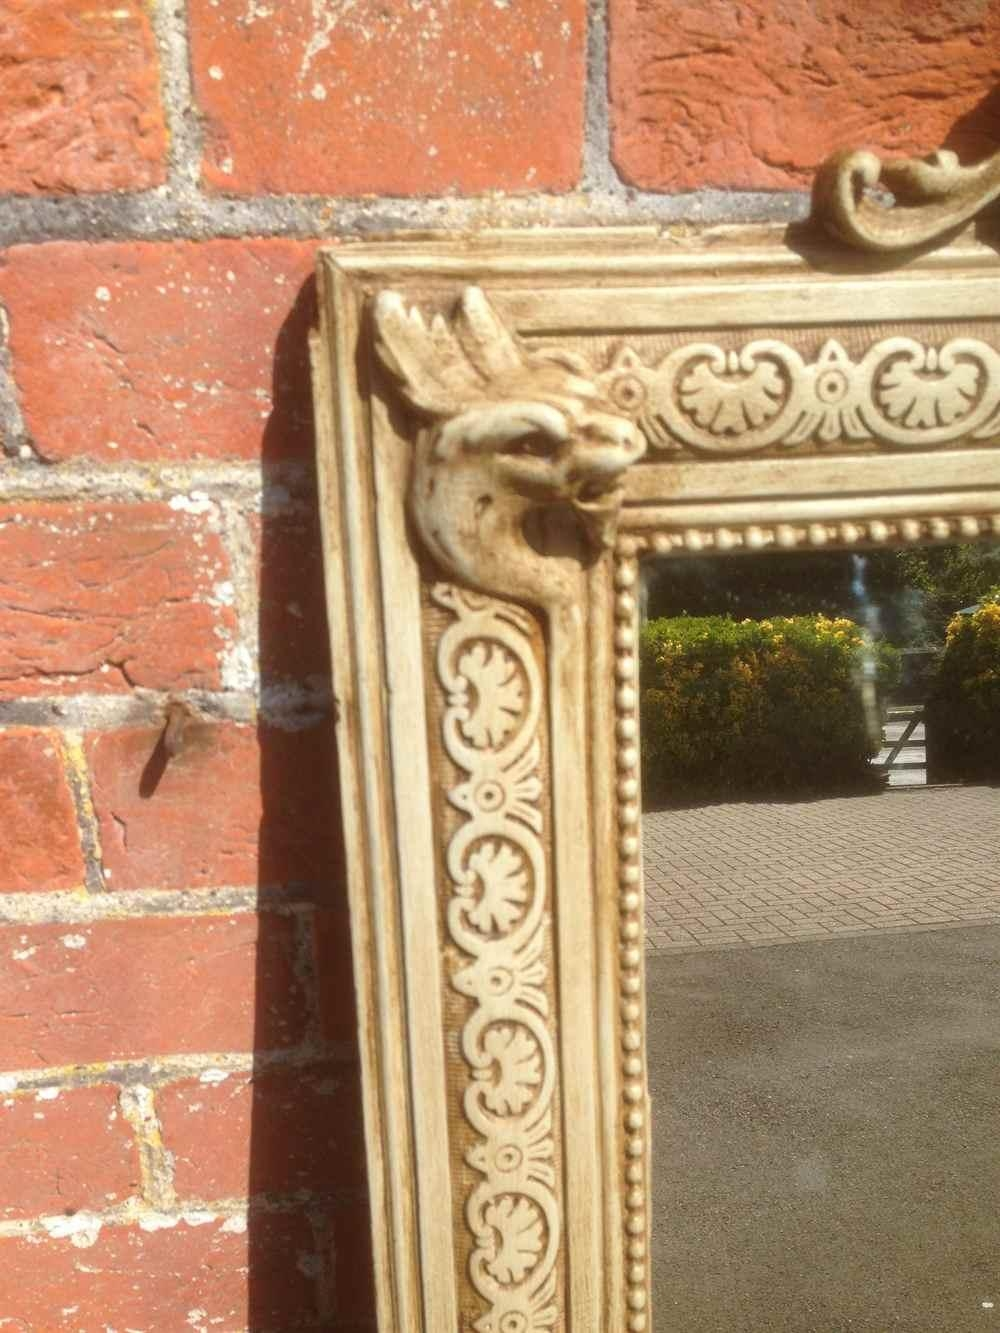 An Unusual Large Antique 19Th Century French Carved Wood & Gesso Pertaining To Unusual Large Mirrors (Image 12 of 20)